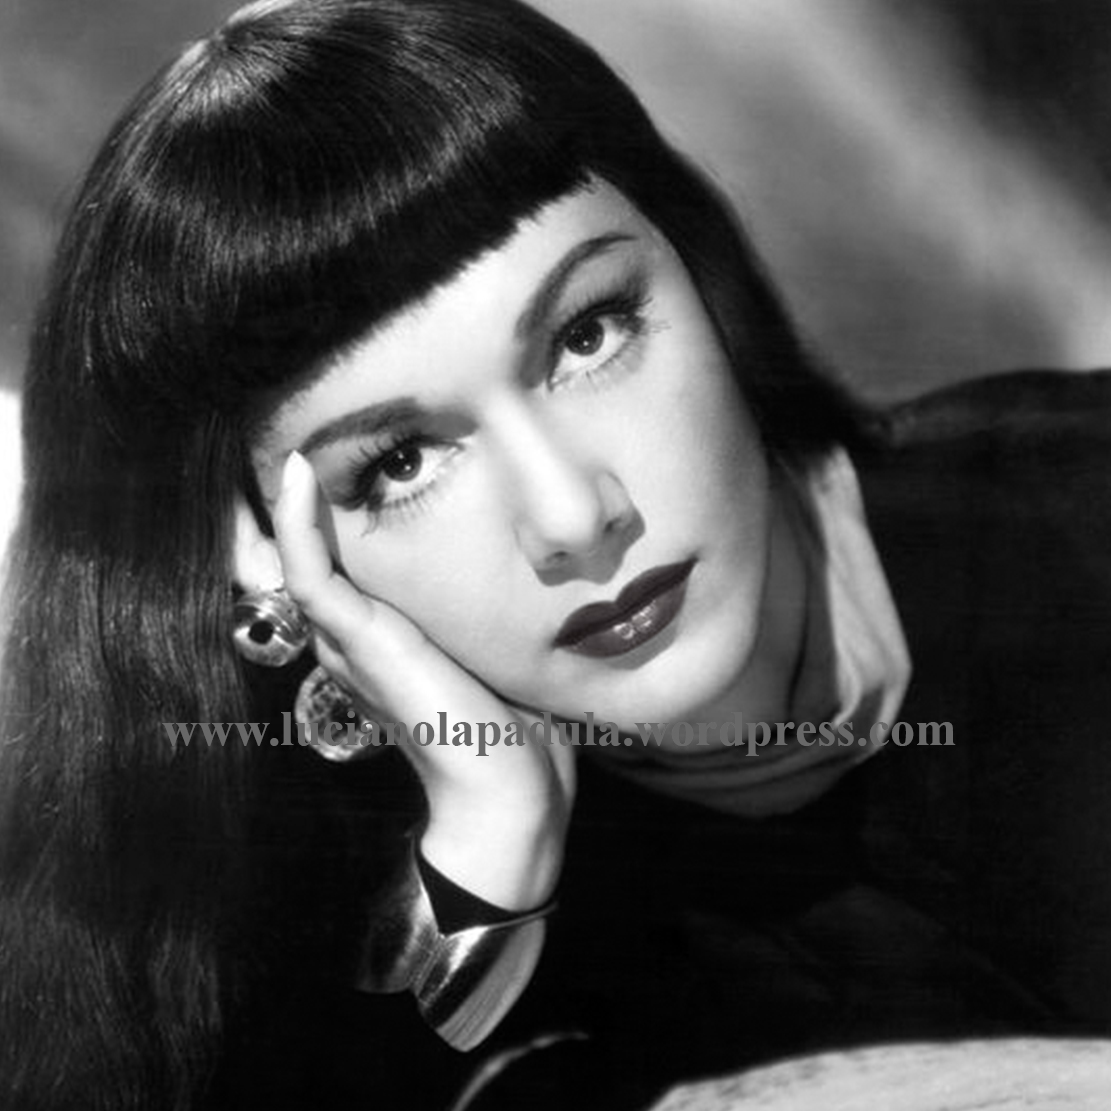 maria montez history fashion cinema luciano lapadula old hollywood blog scrittore blogger moda insegnante historian 1 photography